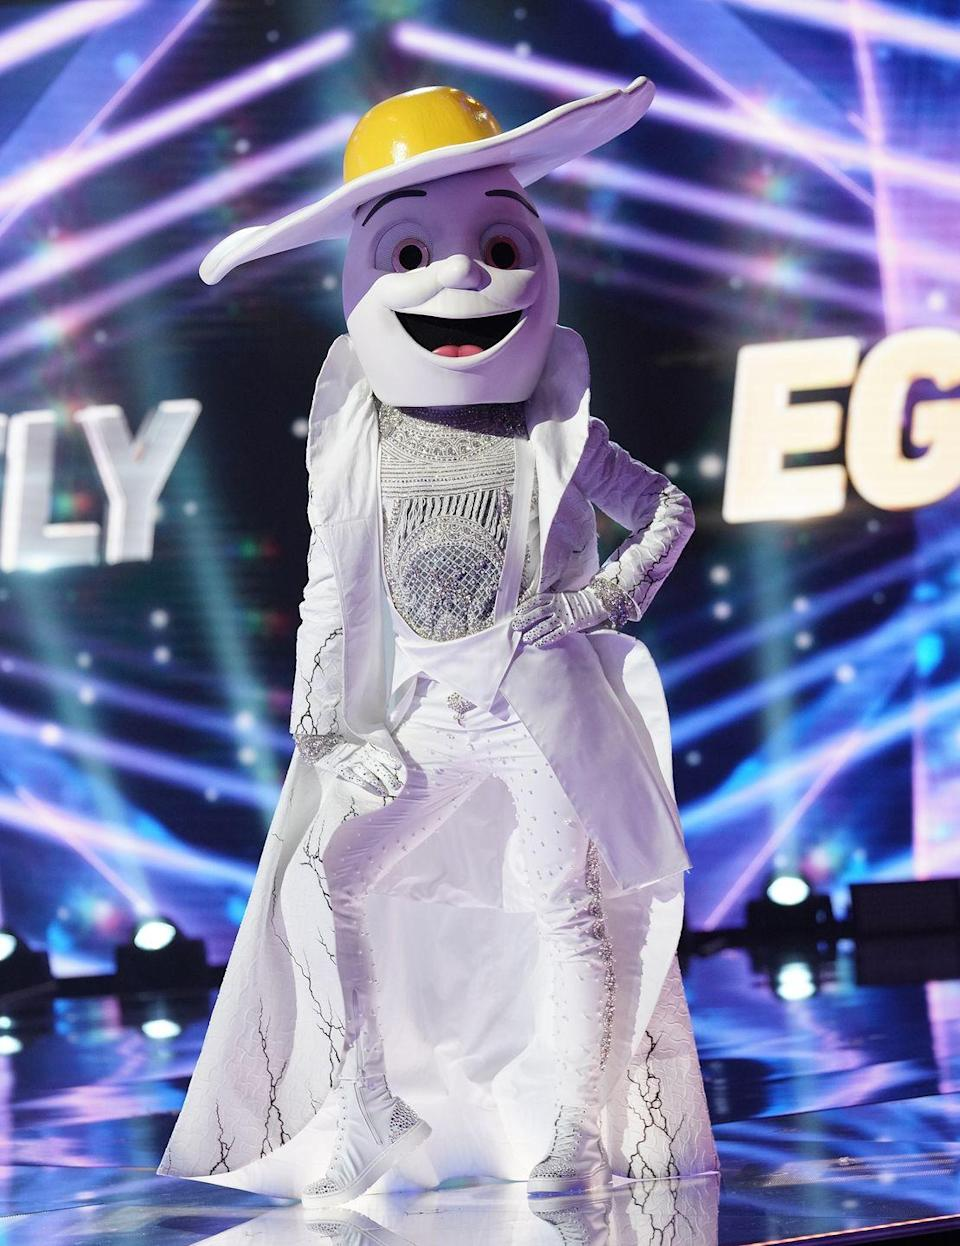 """<p>Code names, like Fox, Night Angel and Unicorn are used to describe the alter egos of contestants. Since <a href=""""https://www.goodhousekeeping.com/life/entertainment/a30677487/masked-singer-season-3-taping-experience/"""" rel=""""nofollow noopener"""" target=""""_blank"""" data-ylk=""""slk:no one knows their real identity"""" class=""""link rapid-noclick-resp"""">no one knows their real identity</a>, the contestants are only referred to by this name until they're unmasked.</p>"""